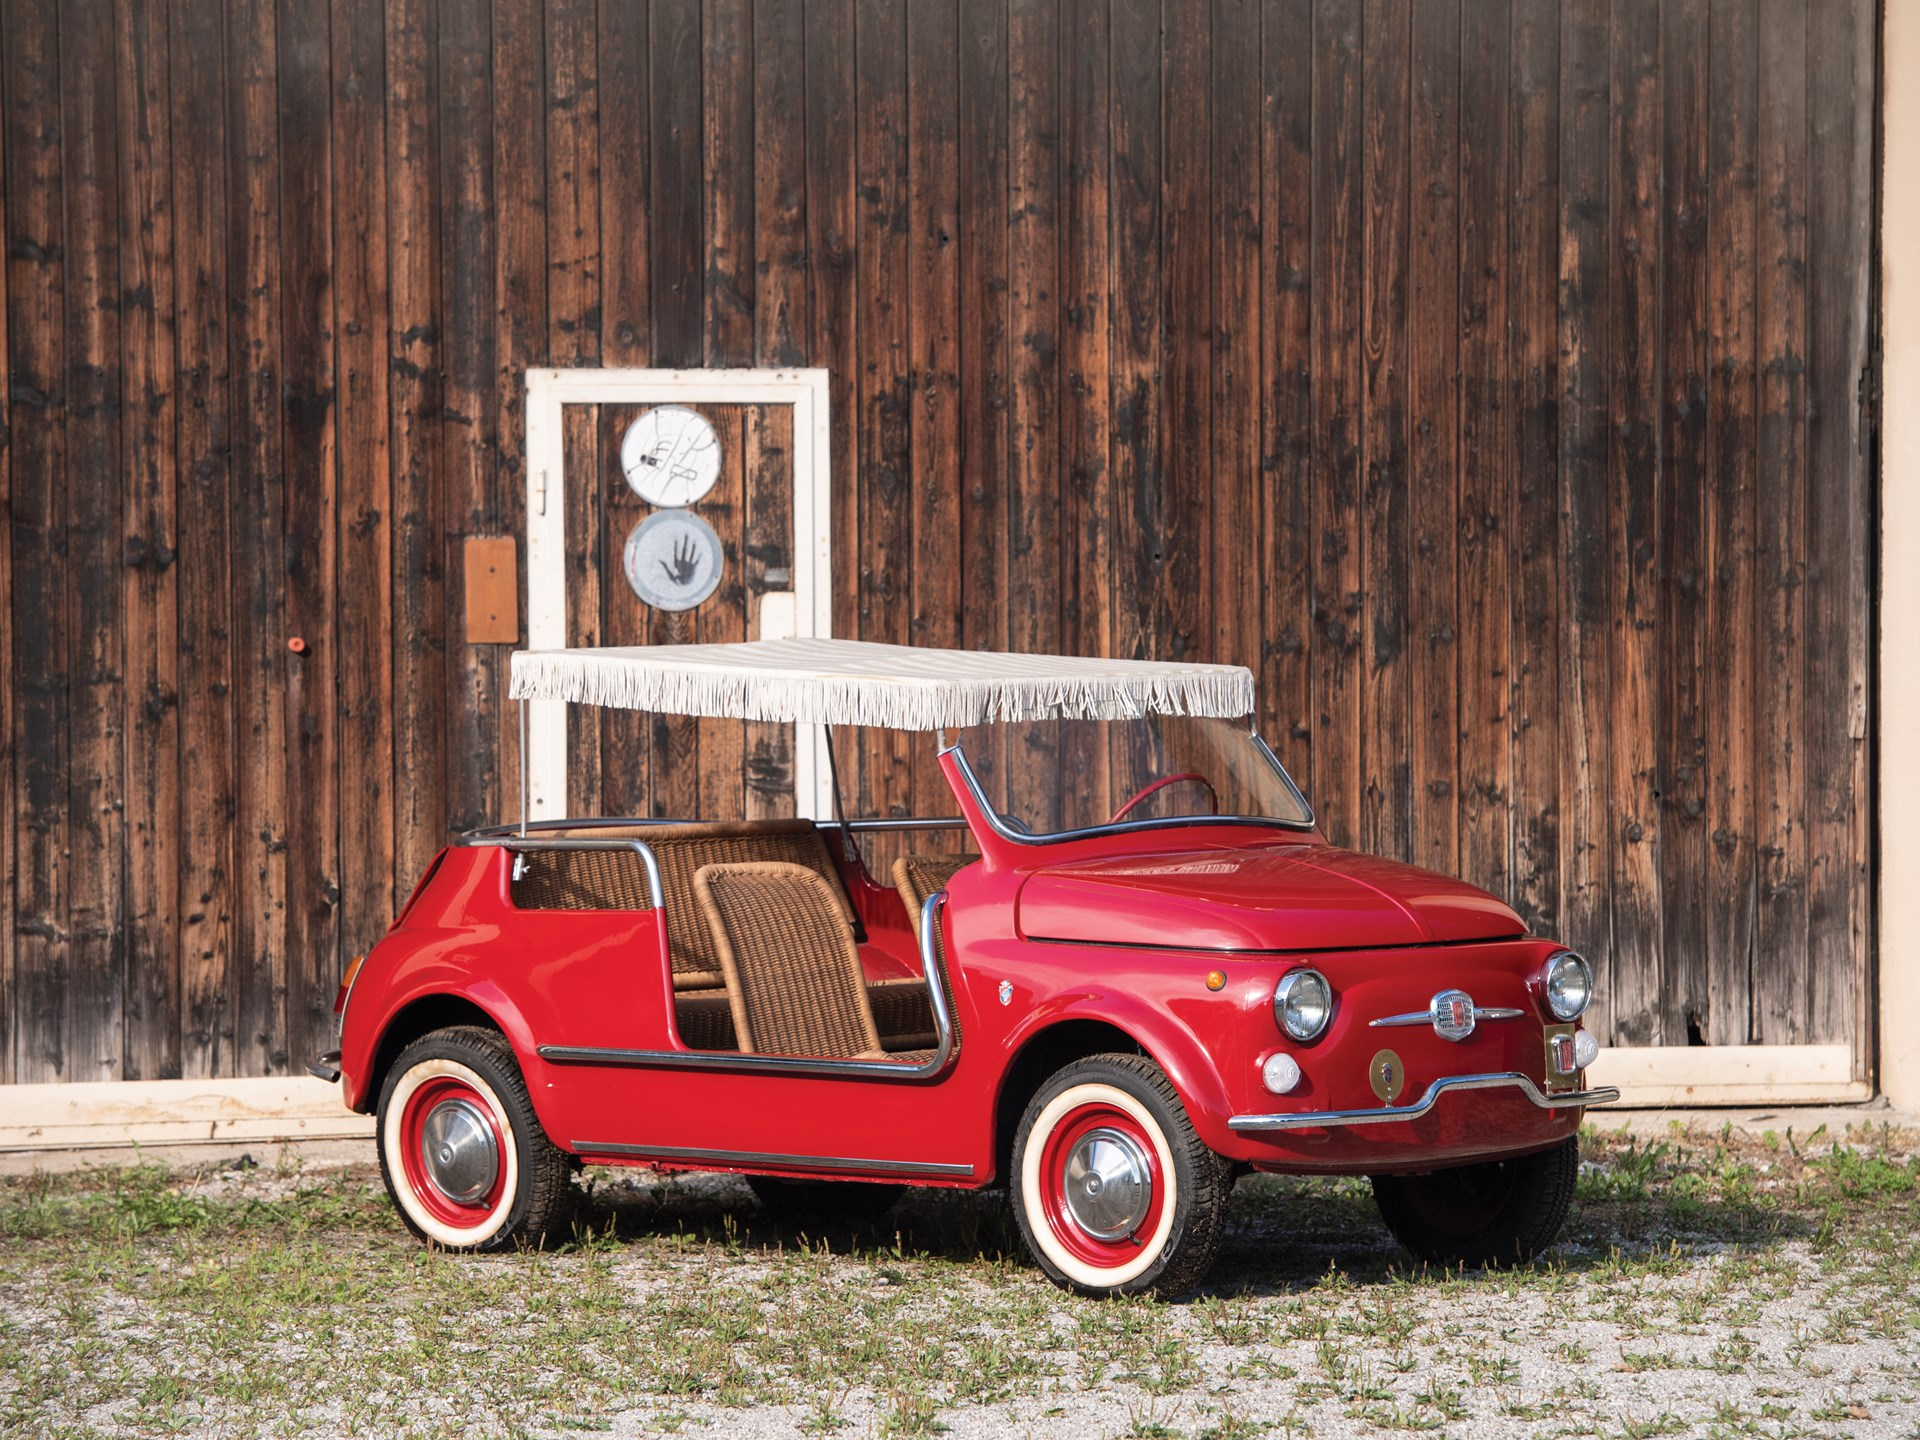 1968 Fiat Jolly front 3/4